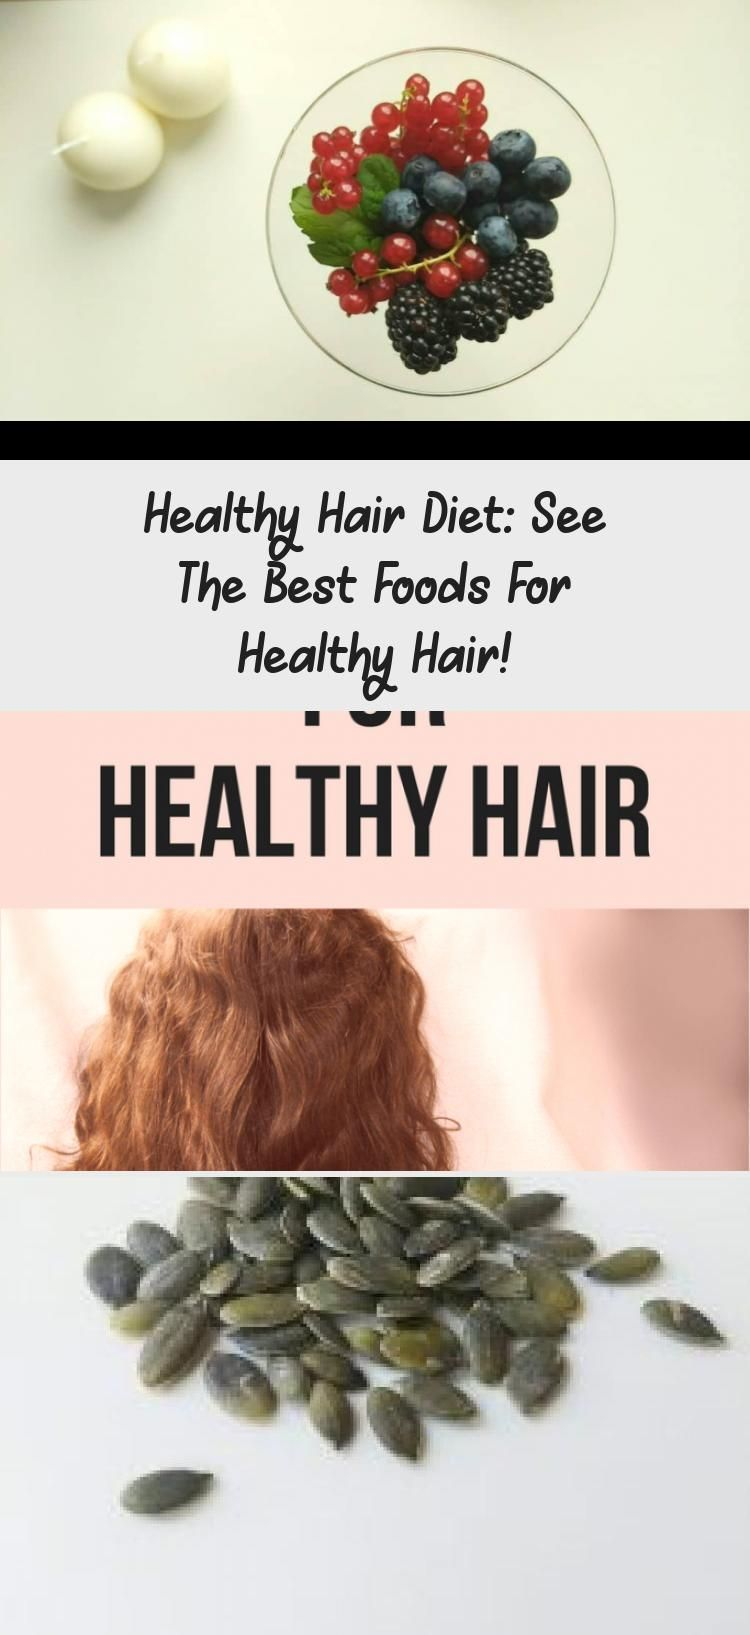 Hair Growth Supplement} and #fasterhairgrowth